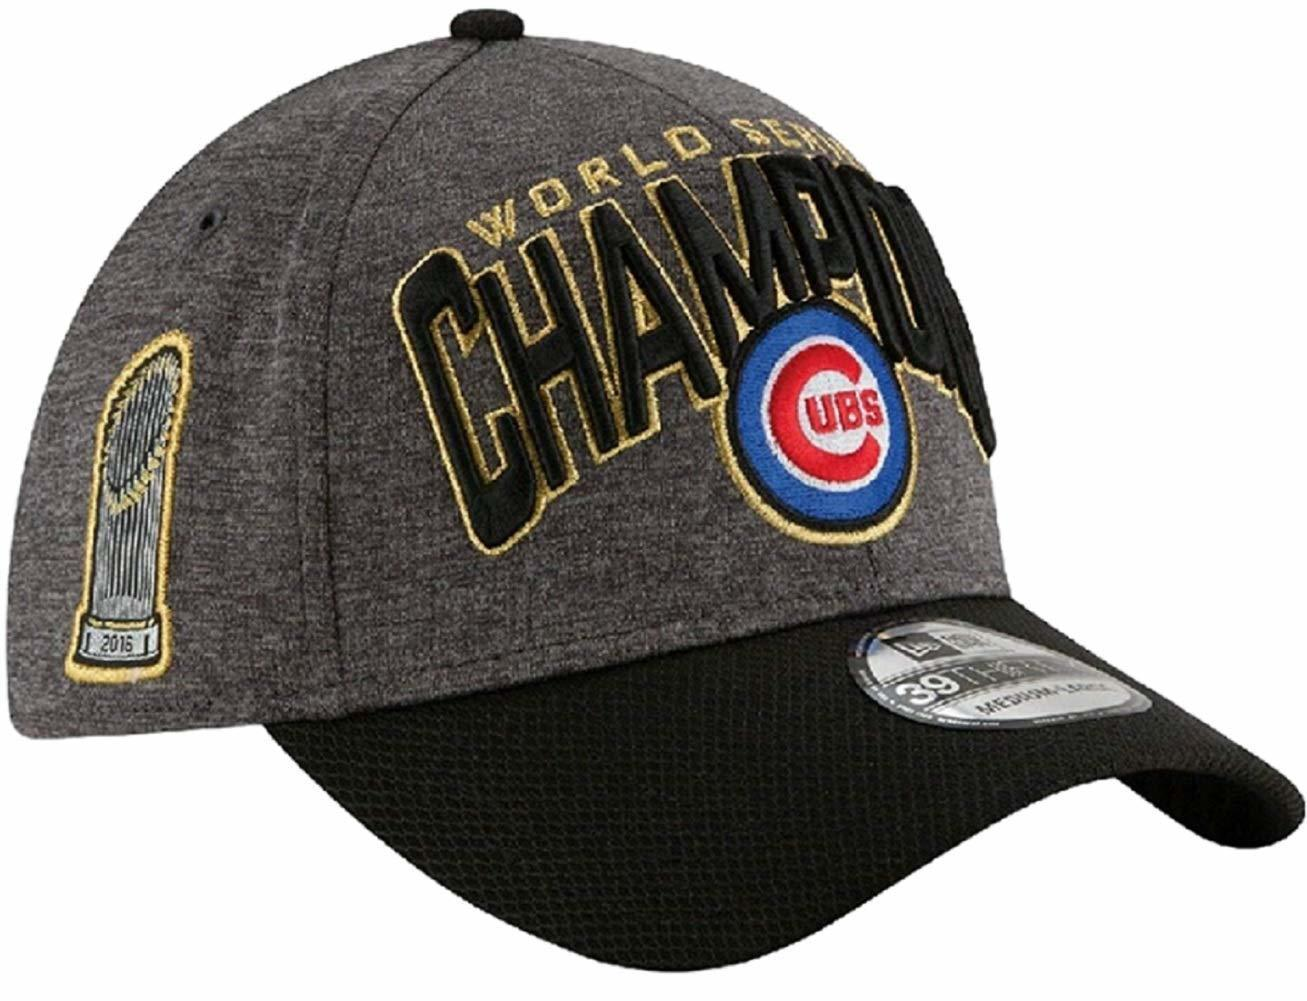 68f63f997cfb5 fit to viewer. prev next. New Era Chicago Cubs 2016 World Series Champions  Locker ...